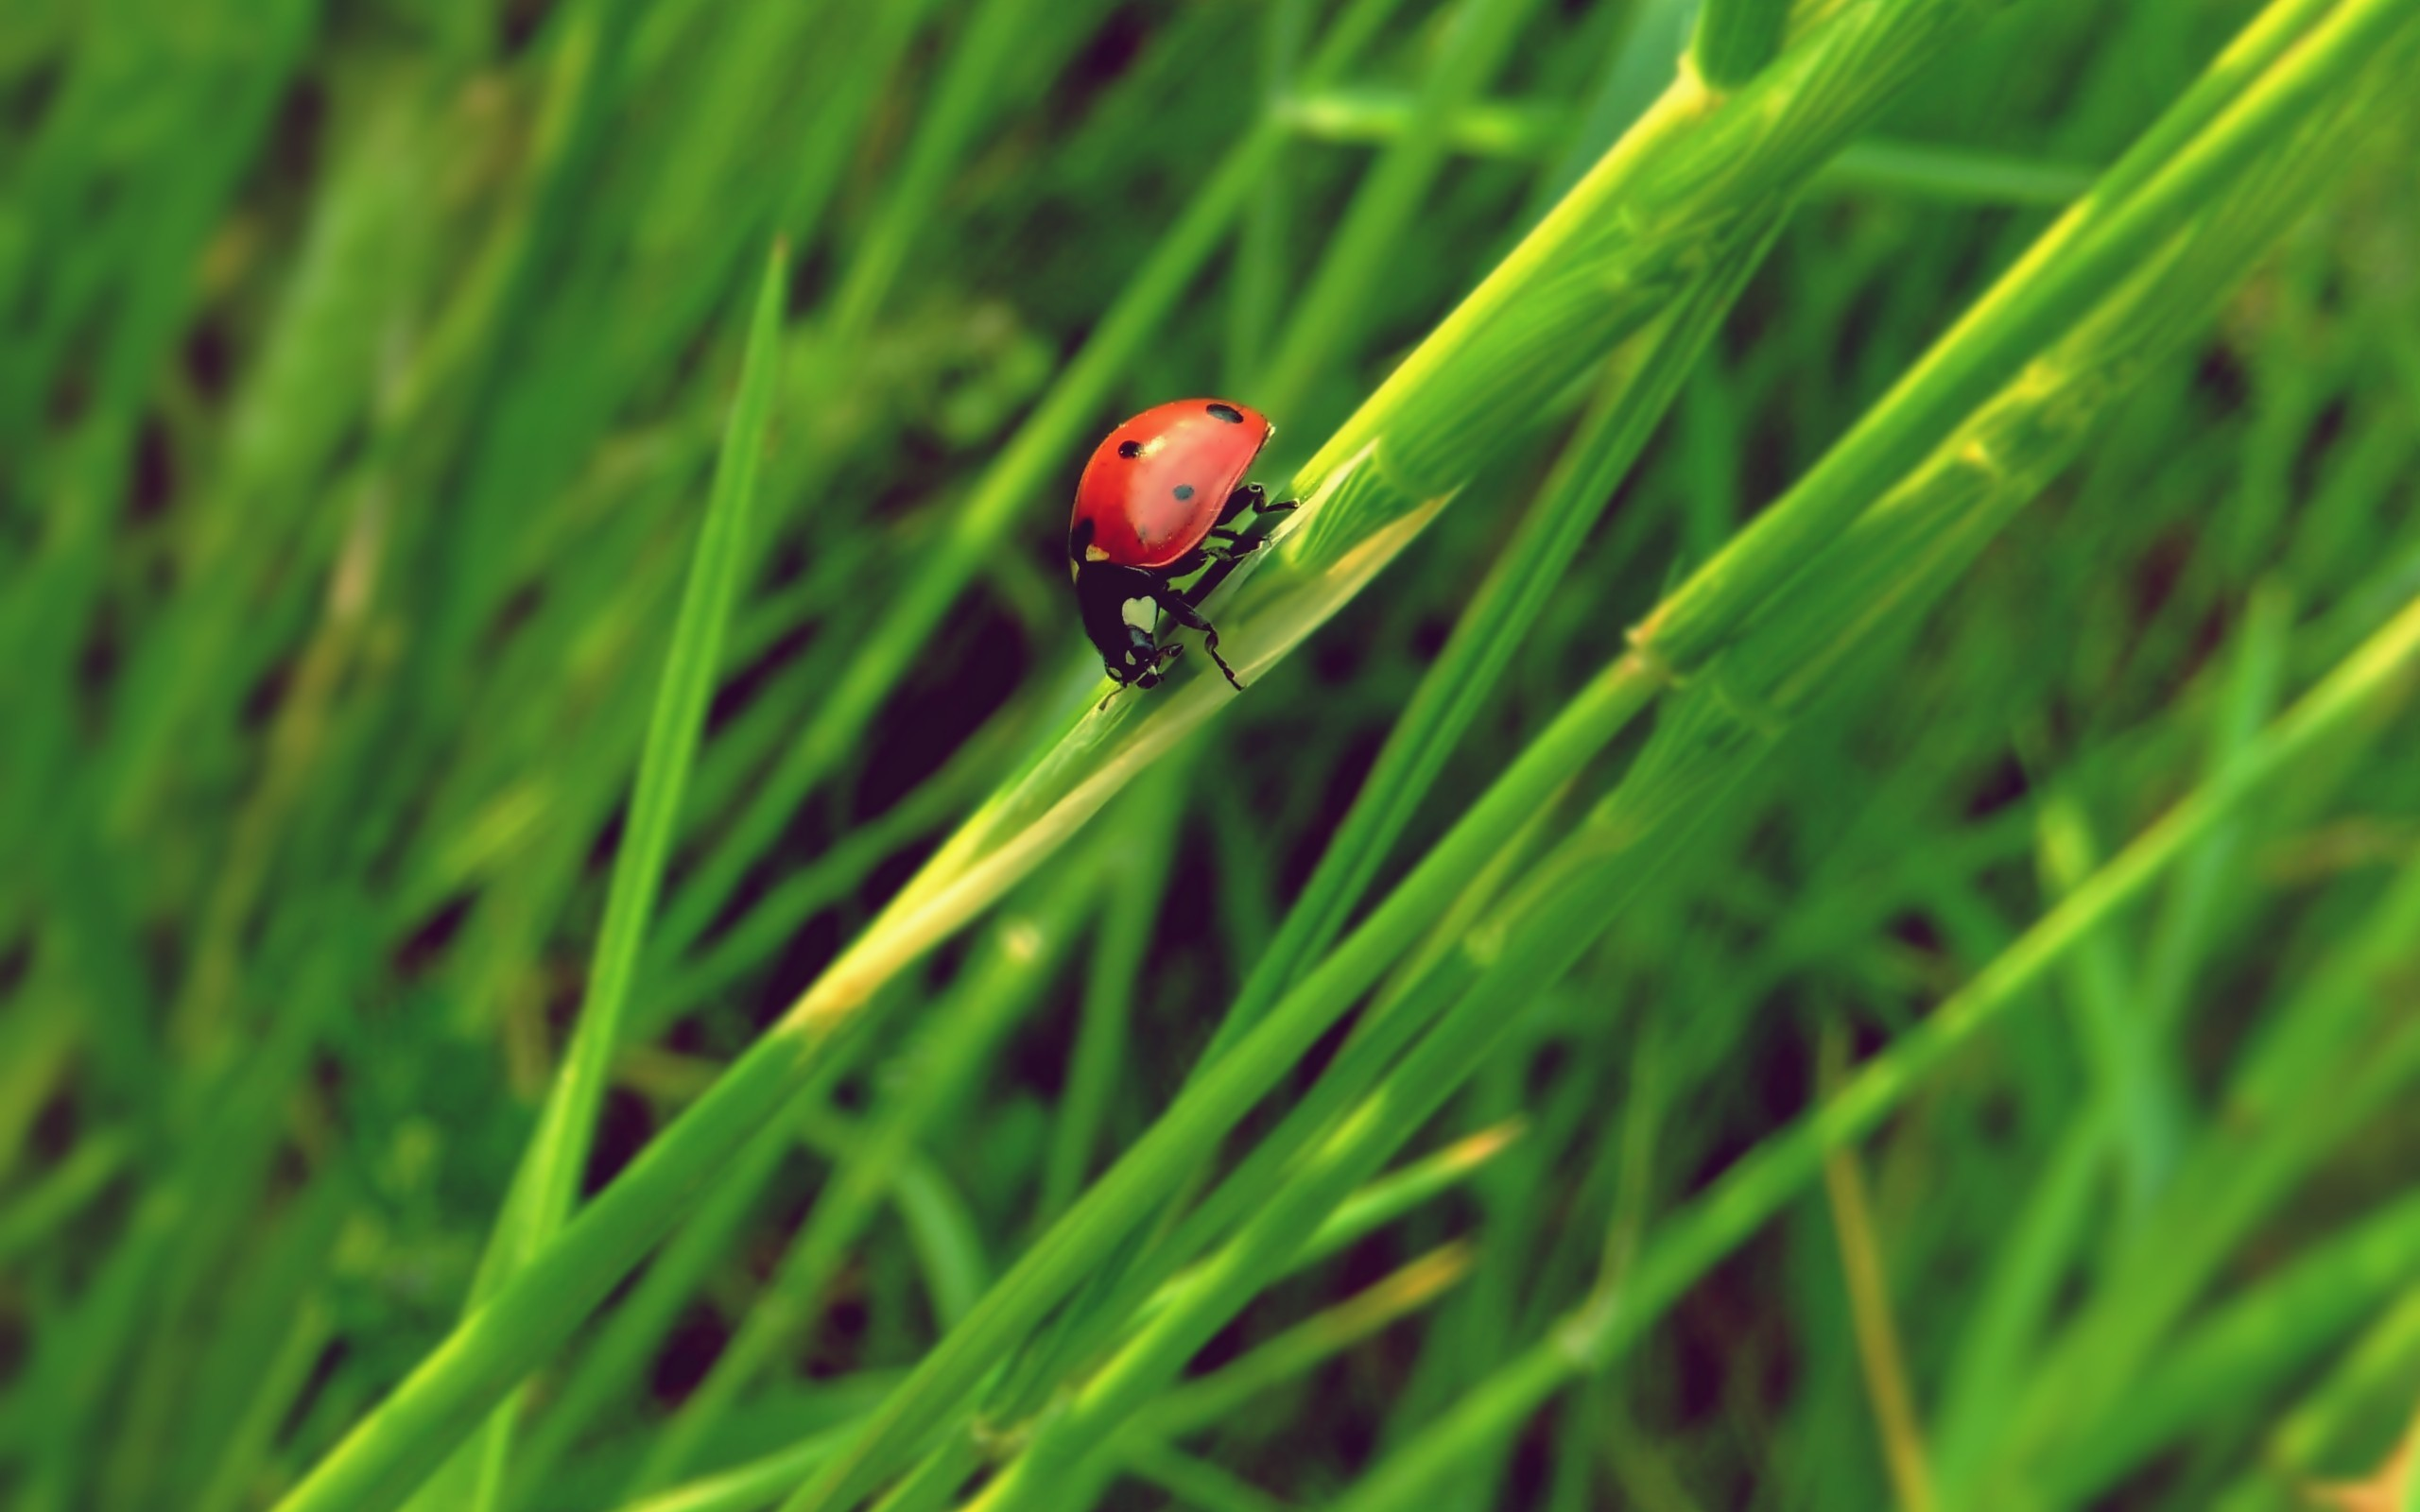 Green nature insects grass HD Wallpaper